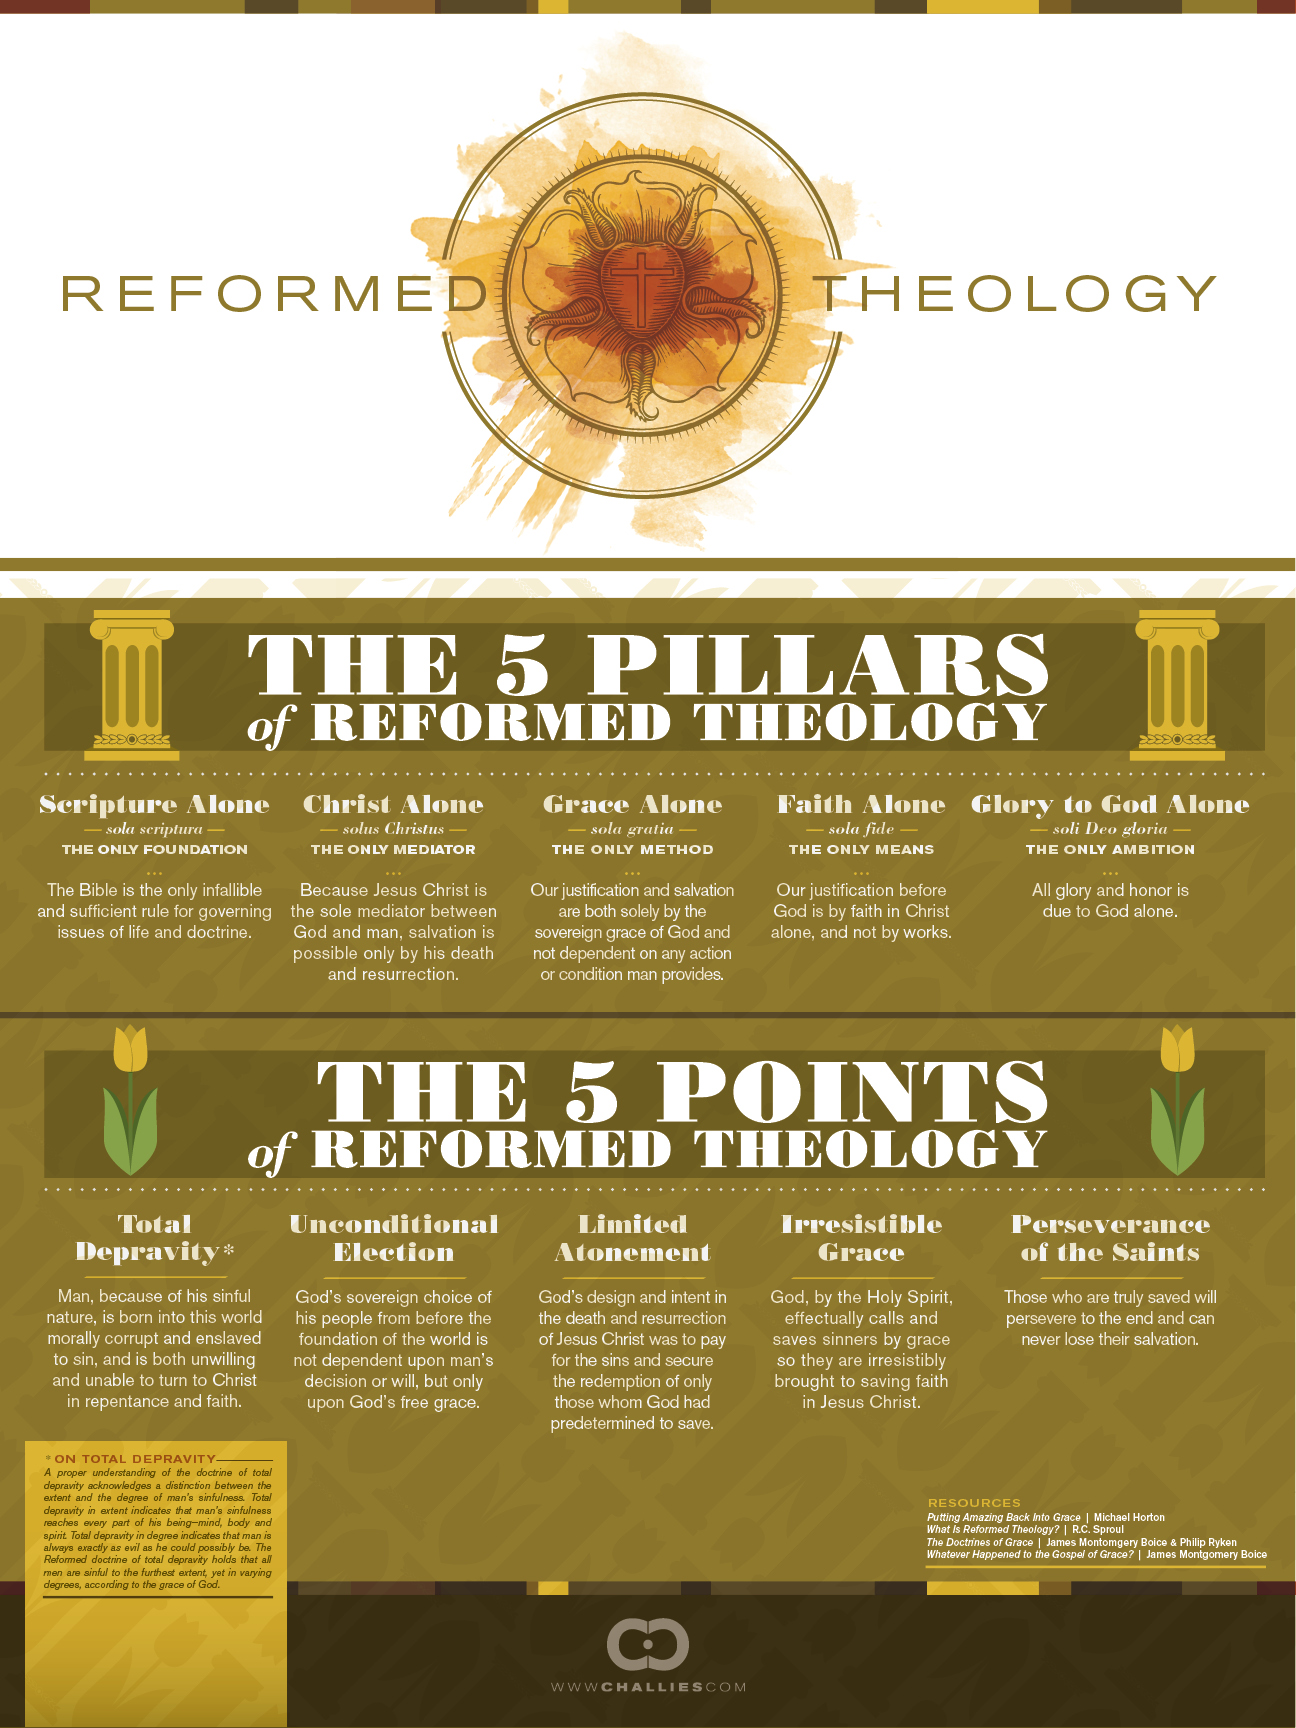 Pin by Jerry King on Theology | Reformed theology